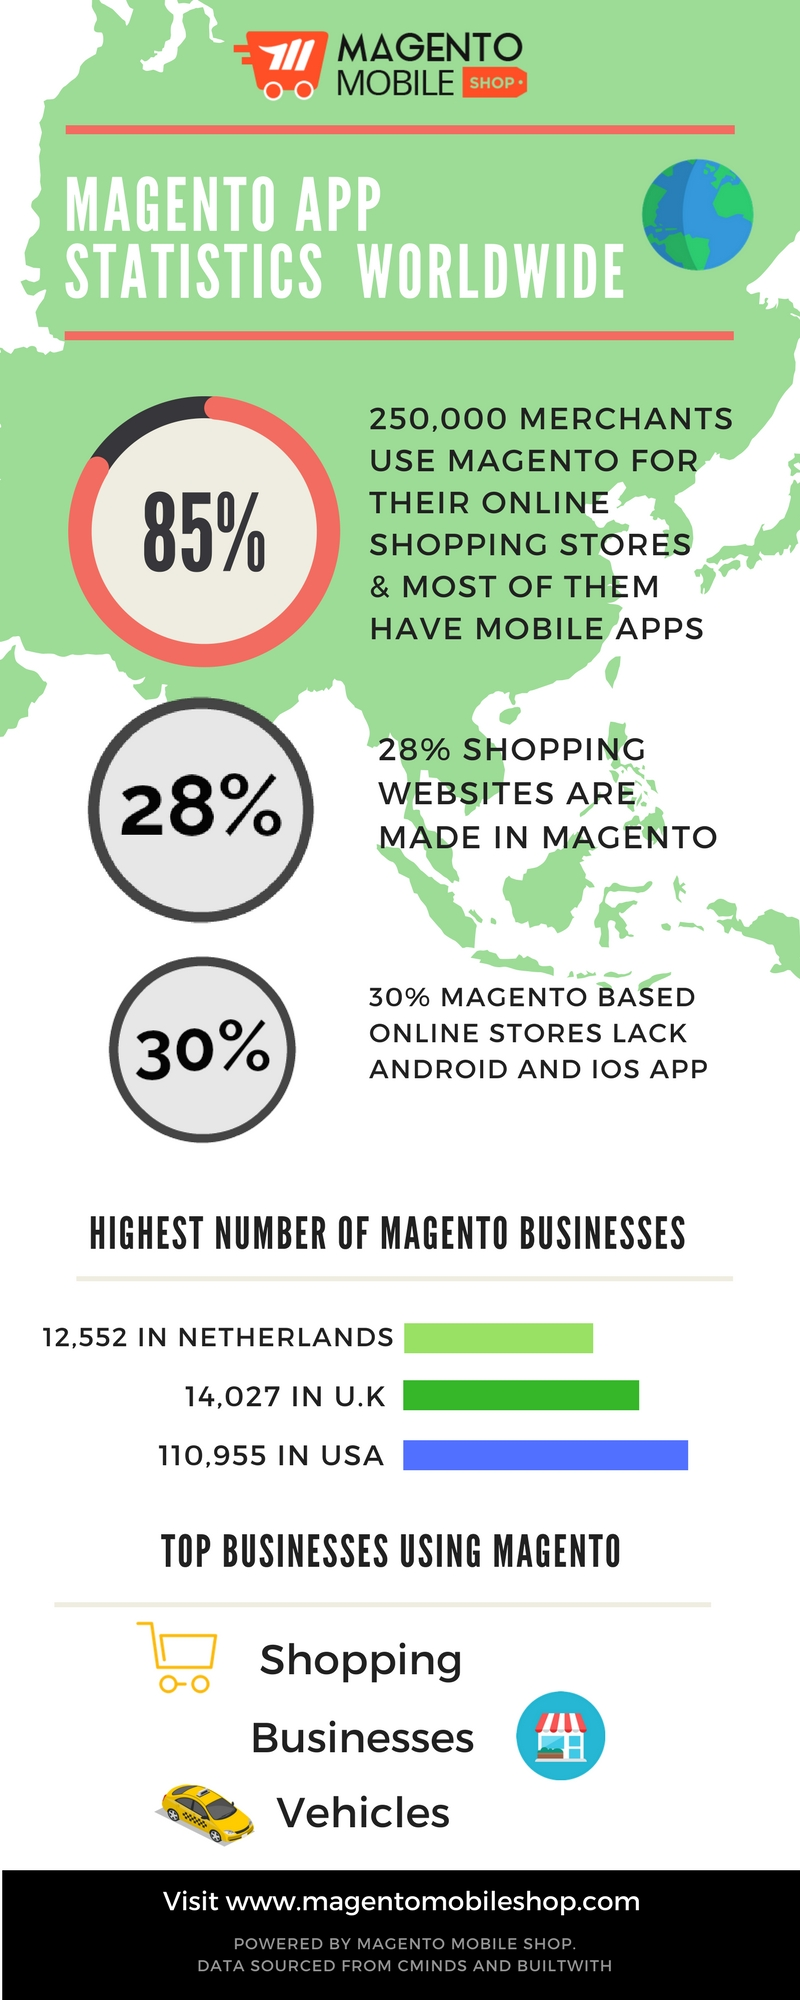 magento mobile app statistics world wide